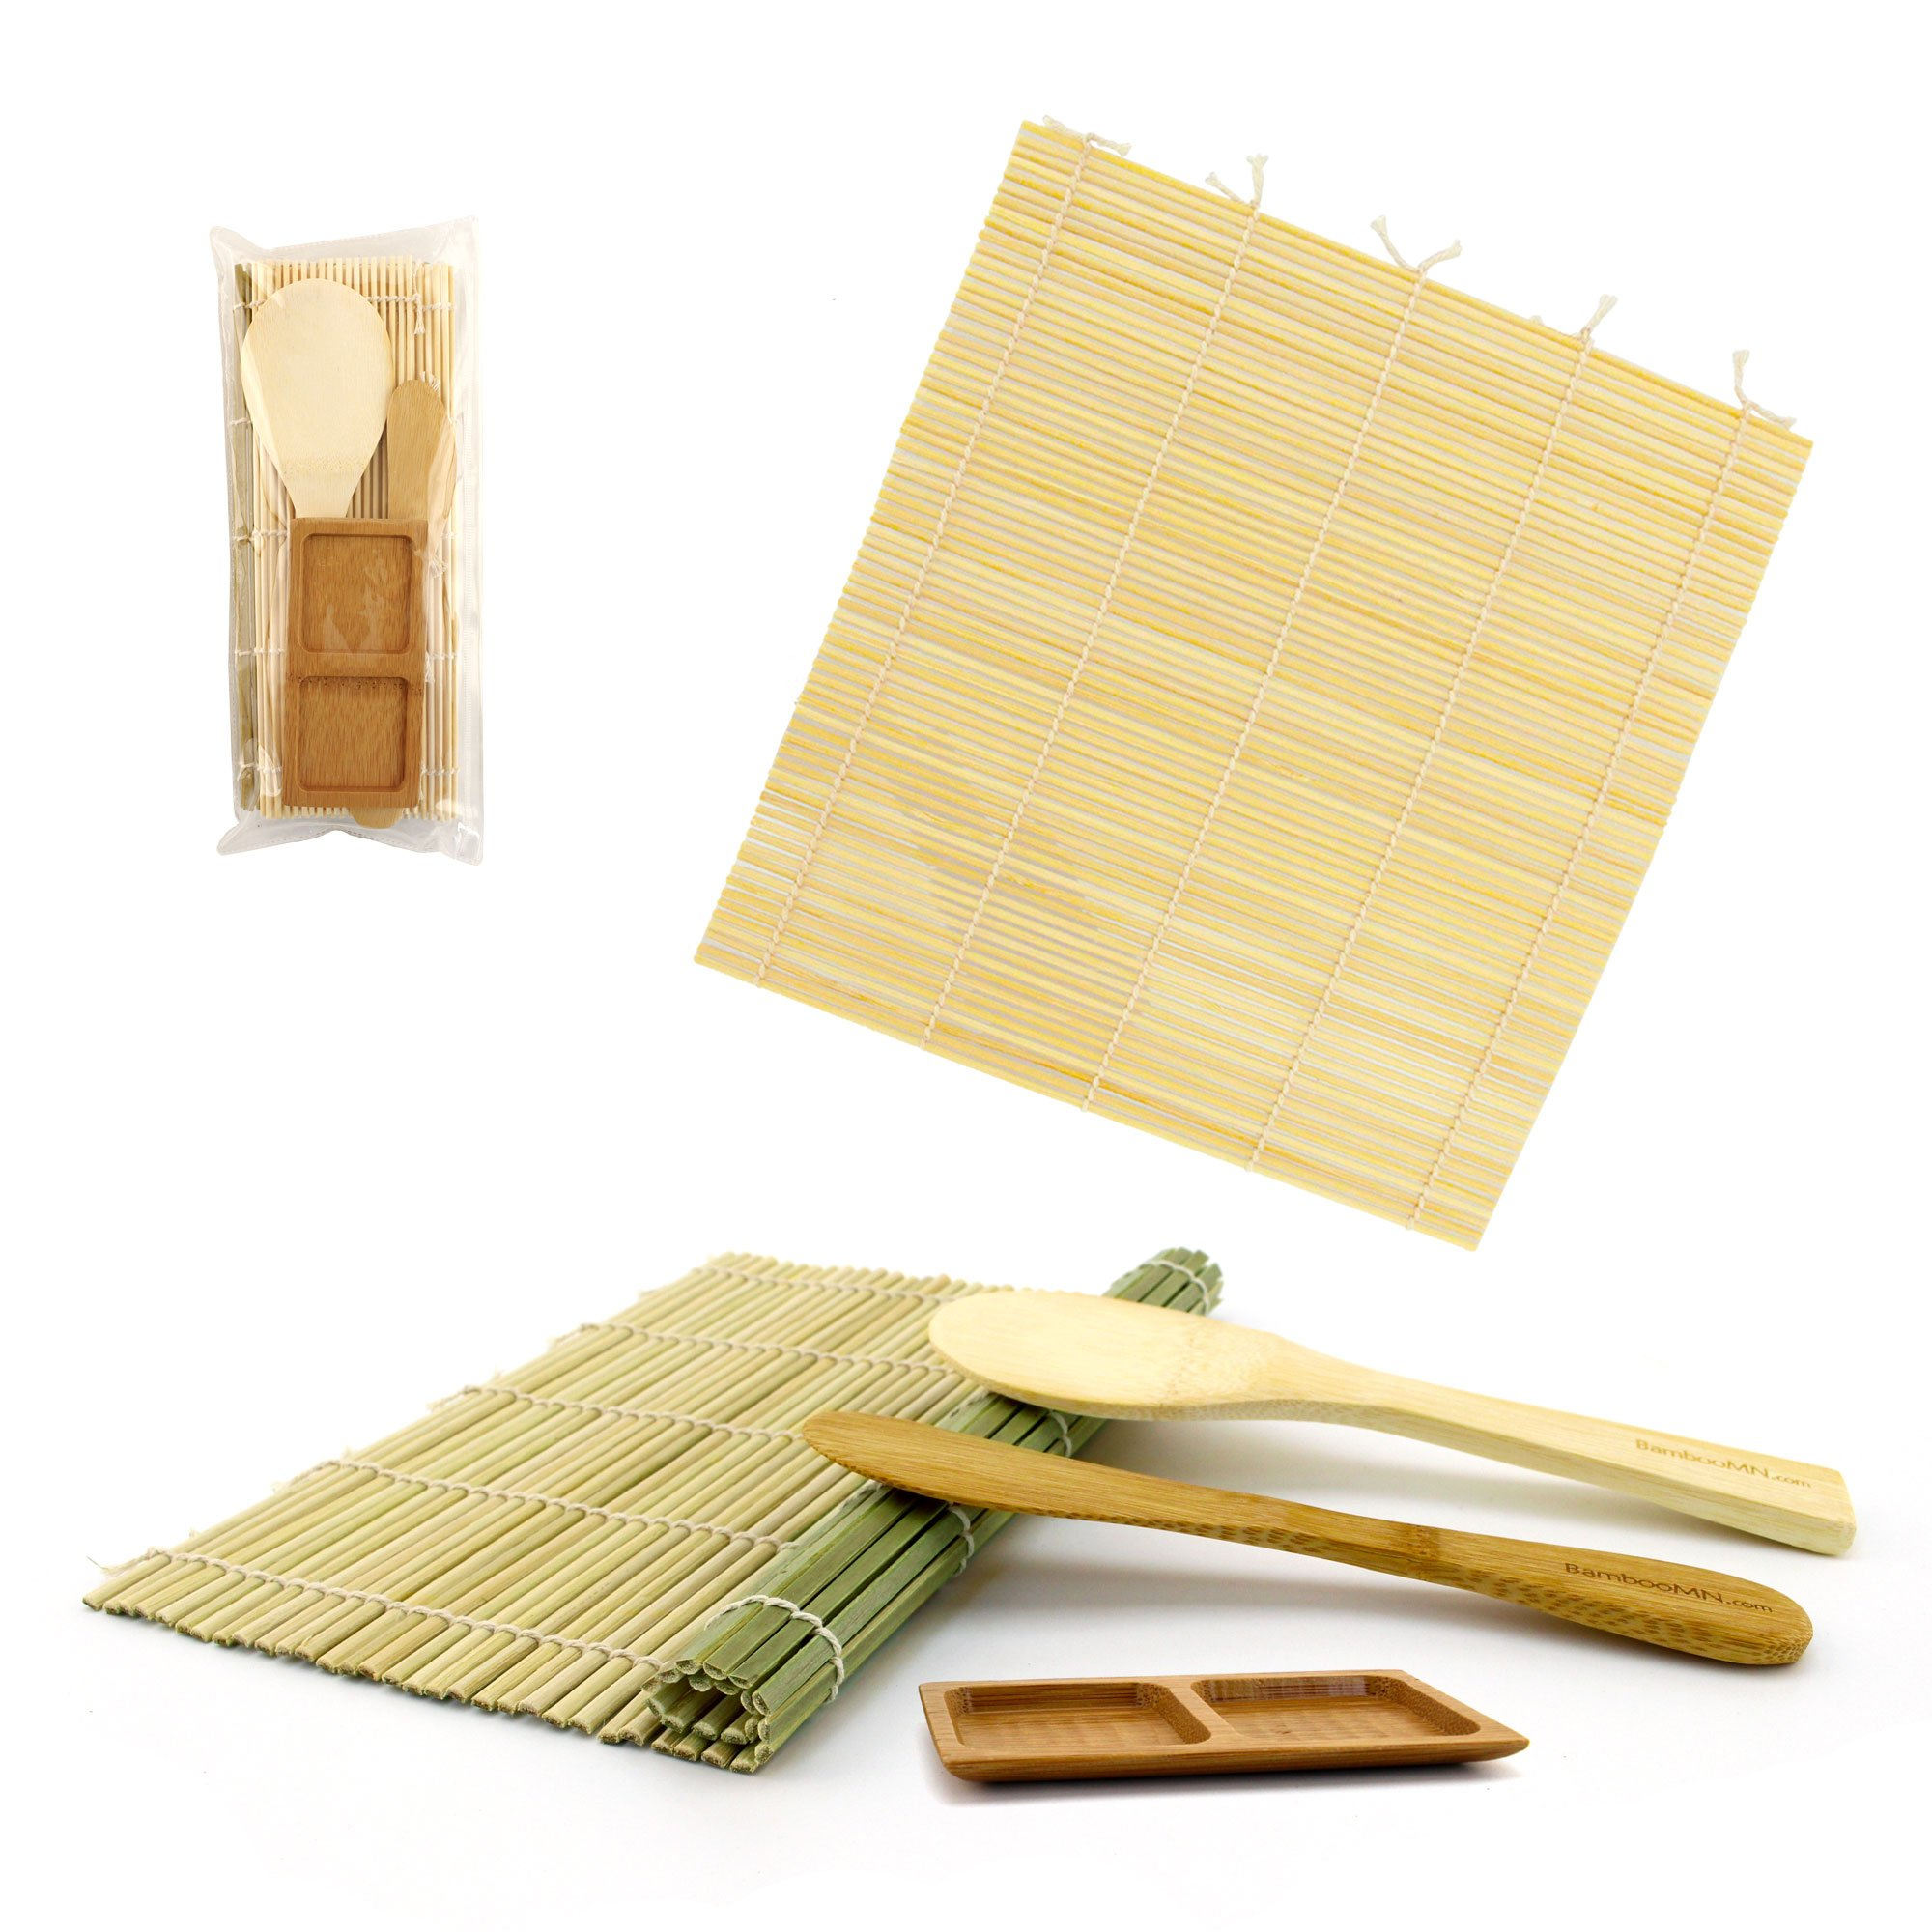 BambooMN Sushi Maker Kit 3 Sets of 1x Green, 1x Natural Bamboo Rolling Mats, 1x Rice Paddle, 1x Spreader, 1 Compartment Sauce Dish